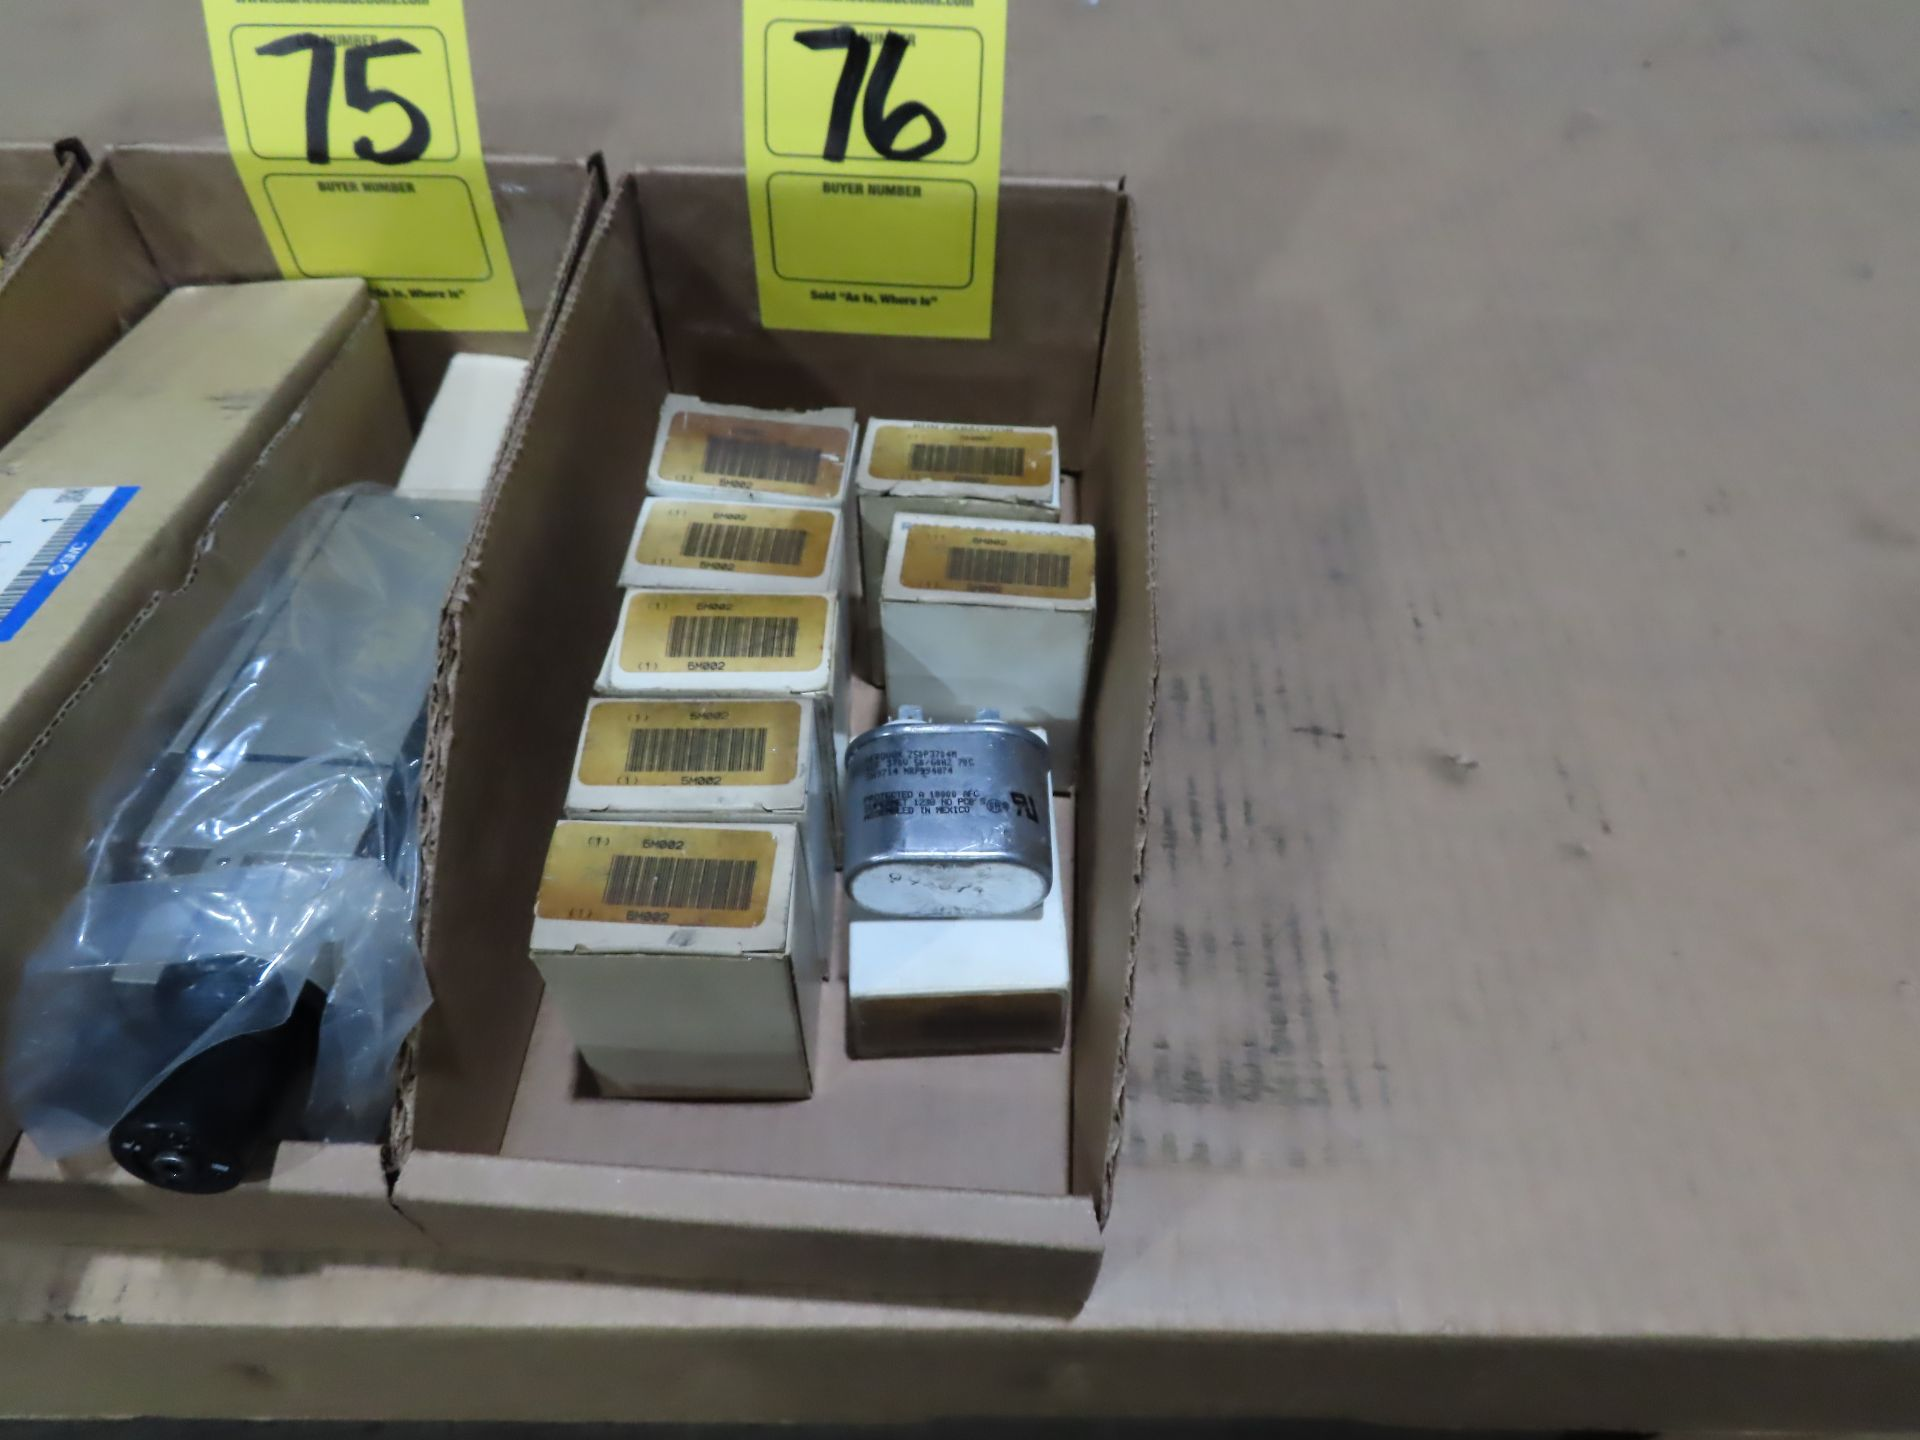 Lot 76 - Qty 8 Aerovox model Z50P3704M, new in boxes, as always, with Brolyn LLC auctions, all lots can be